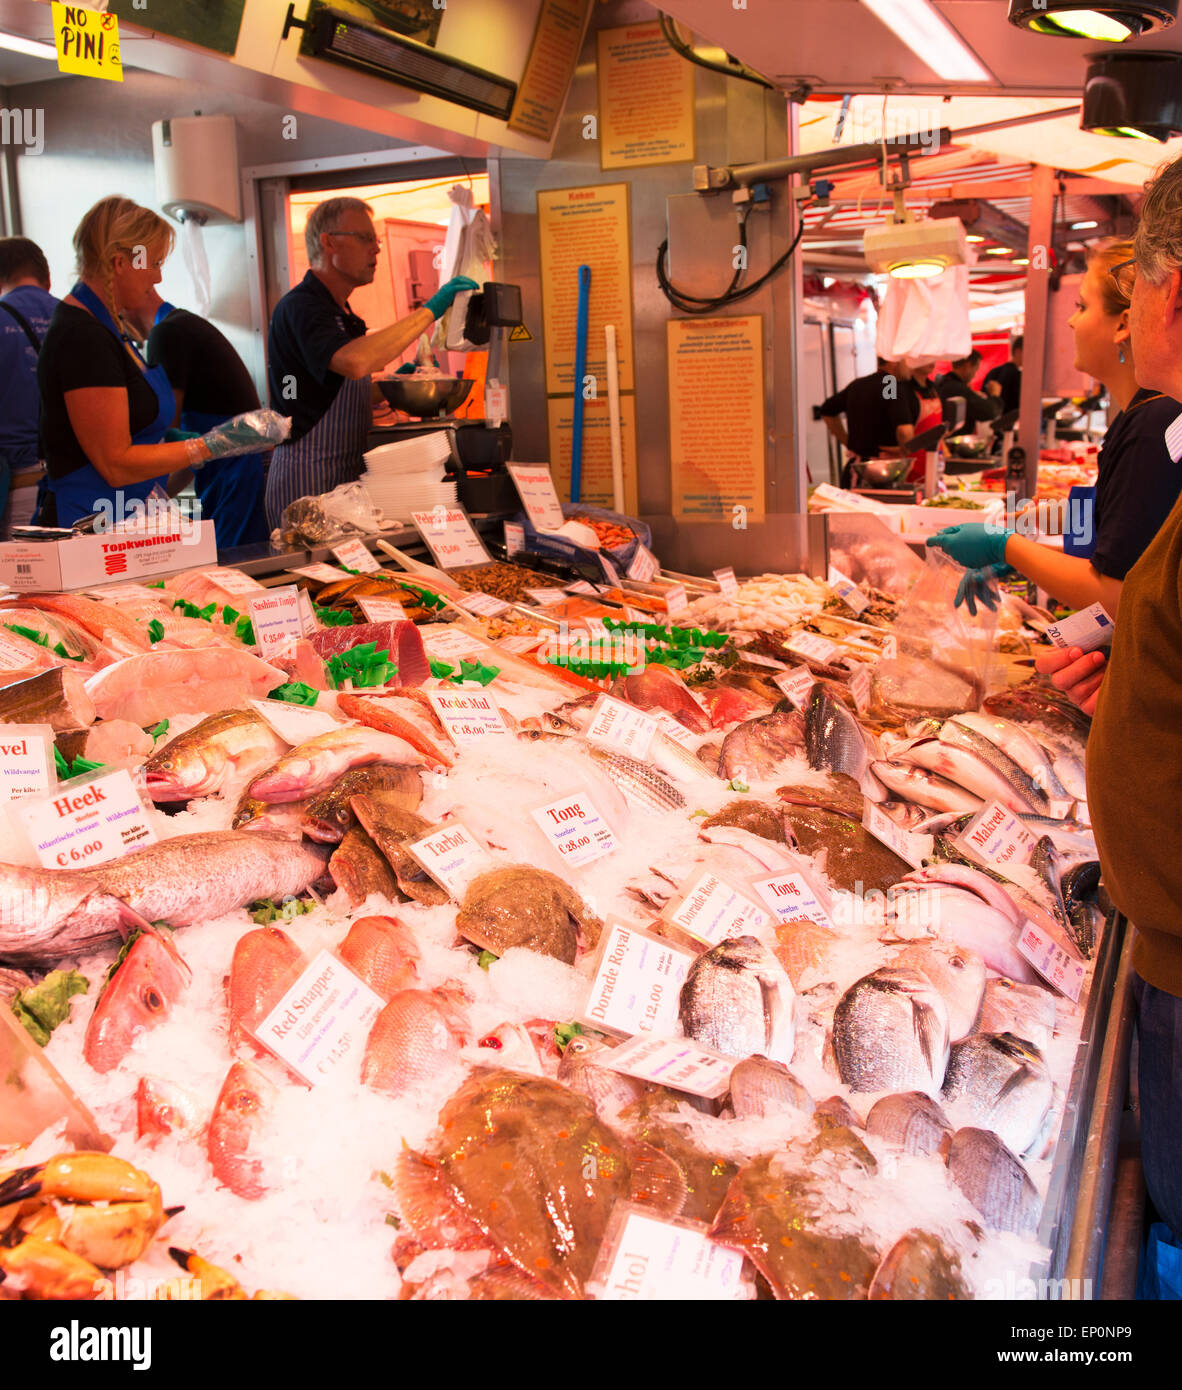 Buyers, sellers and fish at Amsterdam's Fish Market. - Stock Image